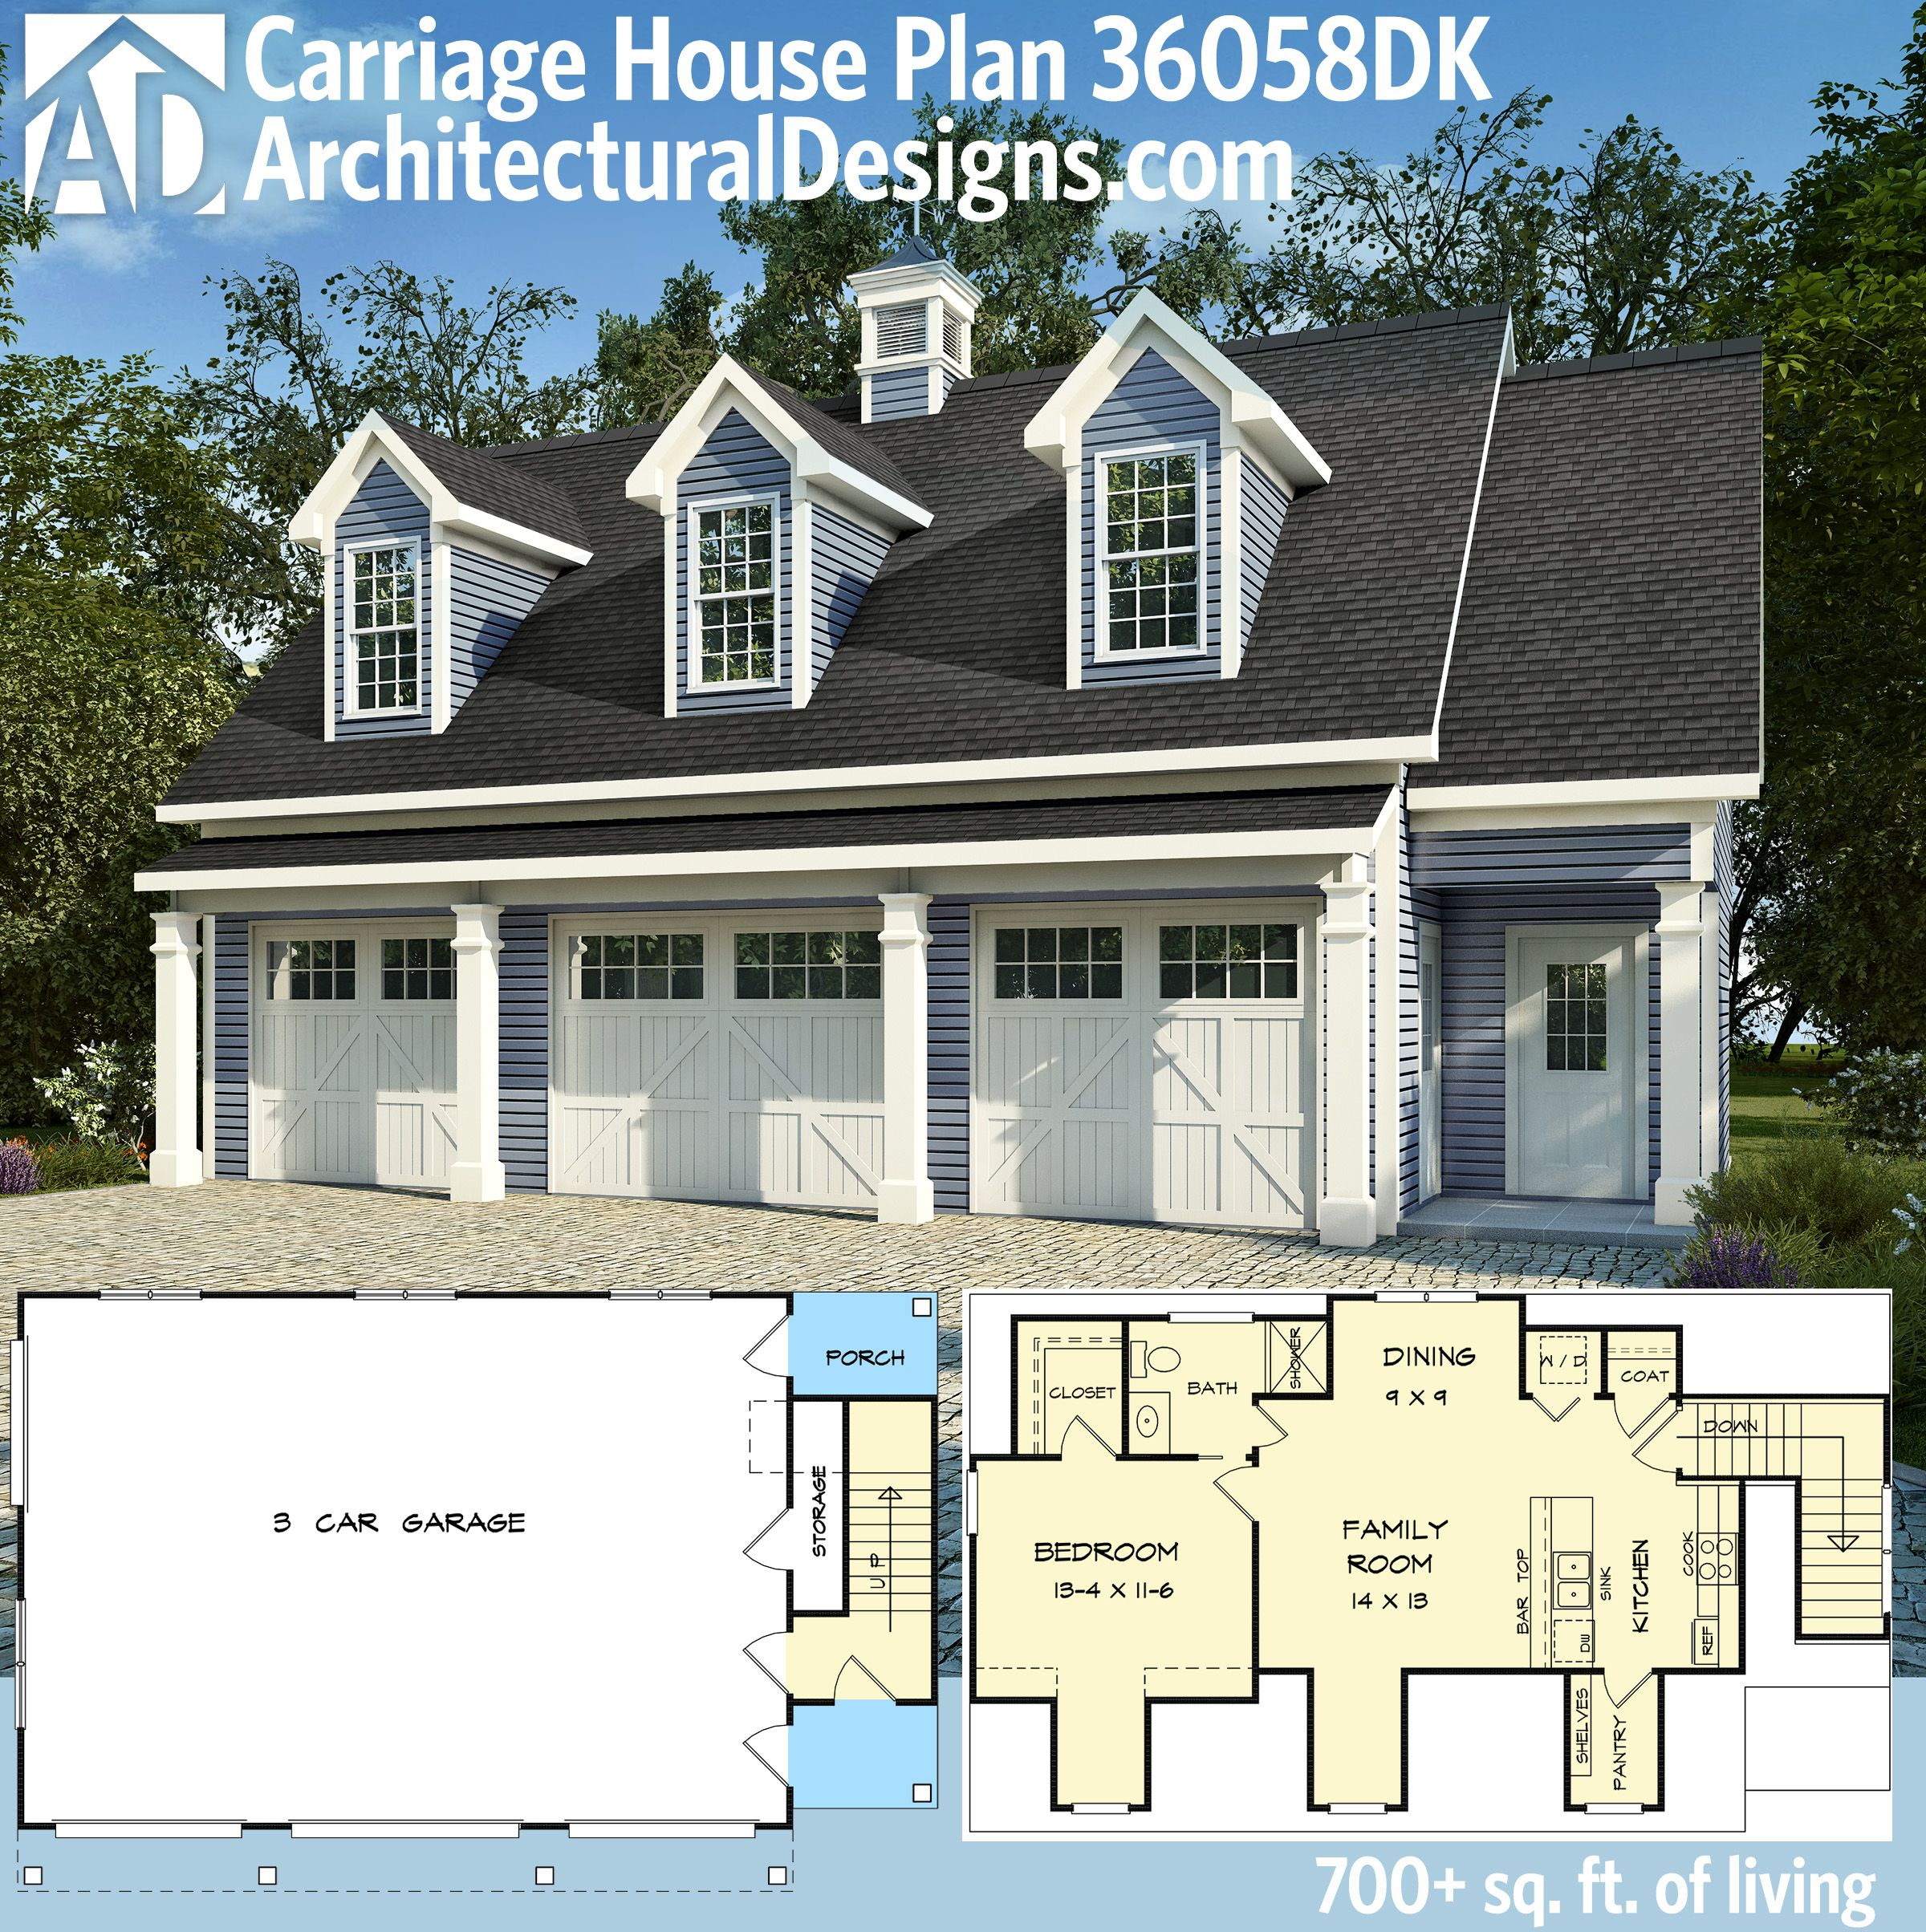 Plan 36058dk 3 Car Carriage House Plan With 3 Dormers